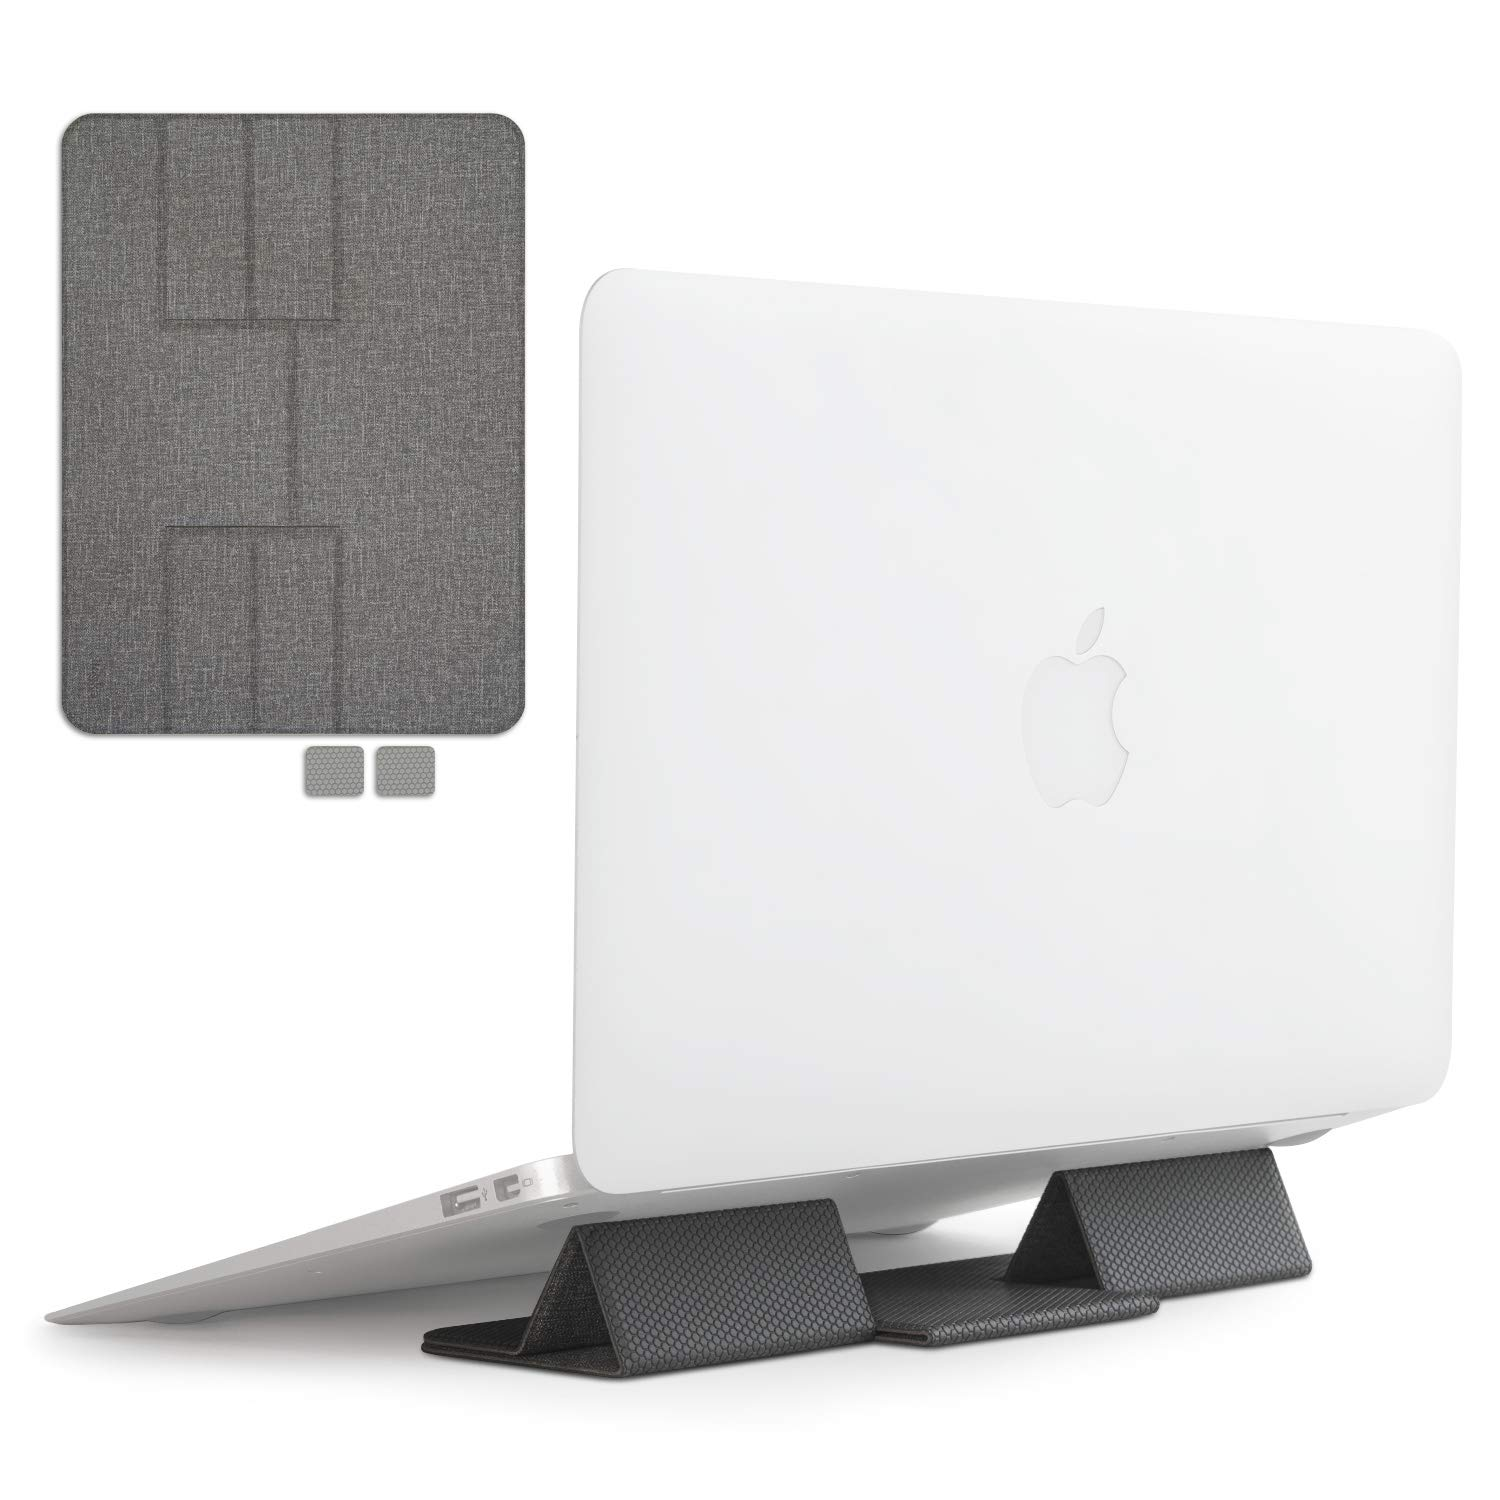 Ringke Folding Stand Portable and Foldable Laptop Stand for Desktop MacBook Notebook Computer iPad Tablet - Gray